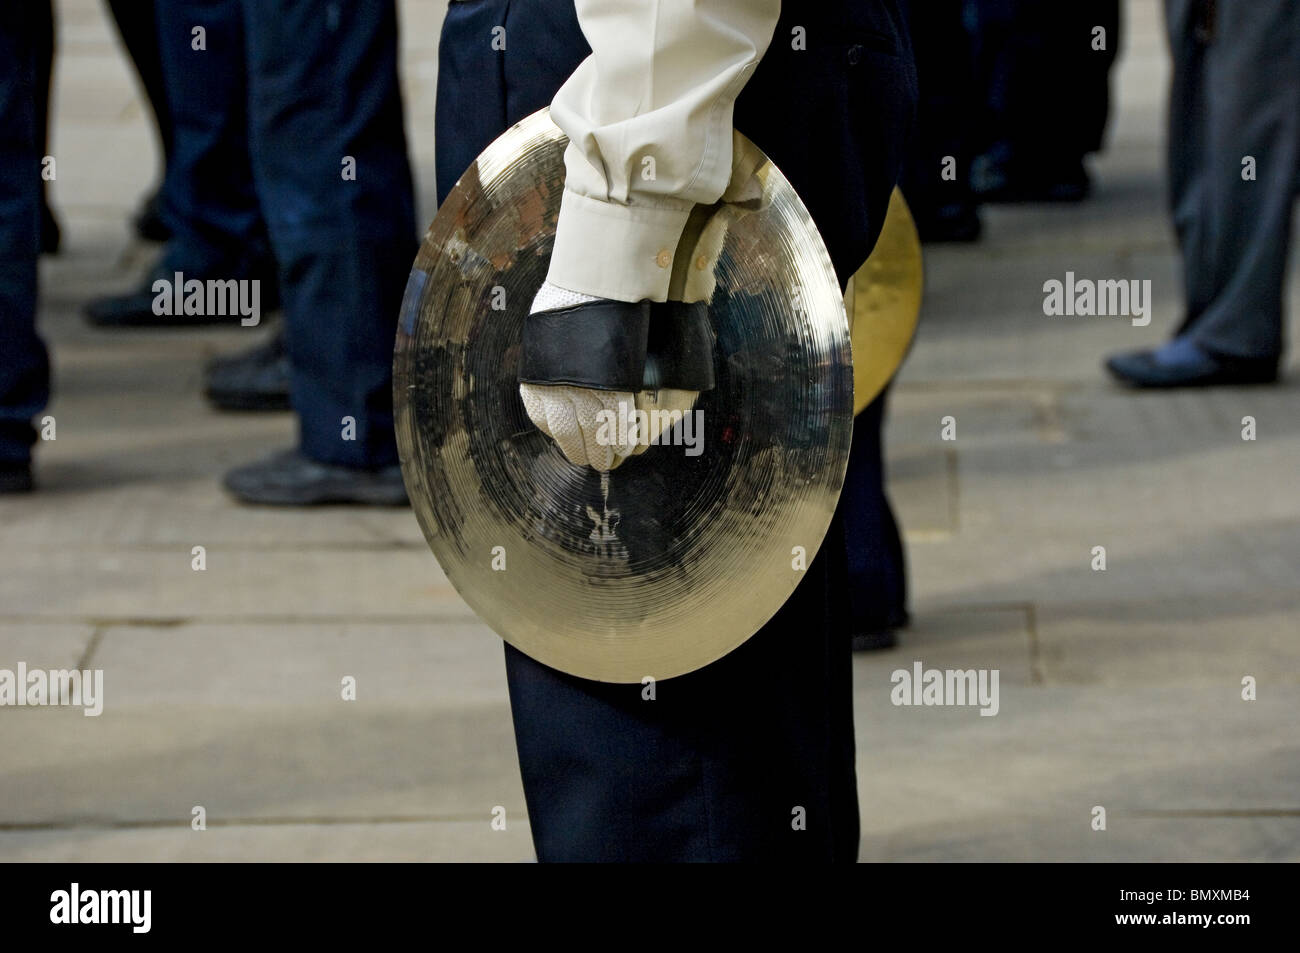 Member of the Scout band holding cymbal York North Yorkshire England UK United Kingdom GB Great Britain - Stock Image